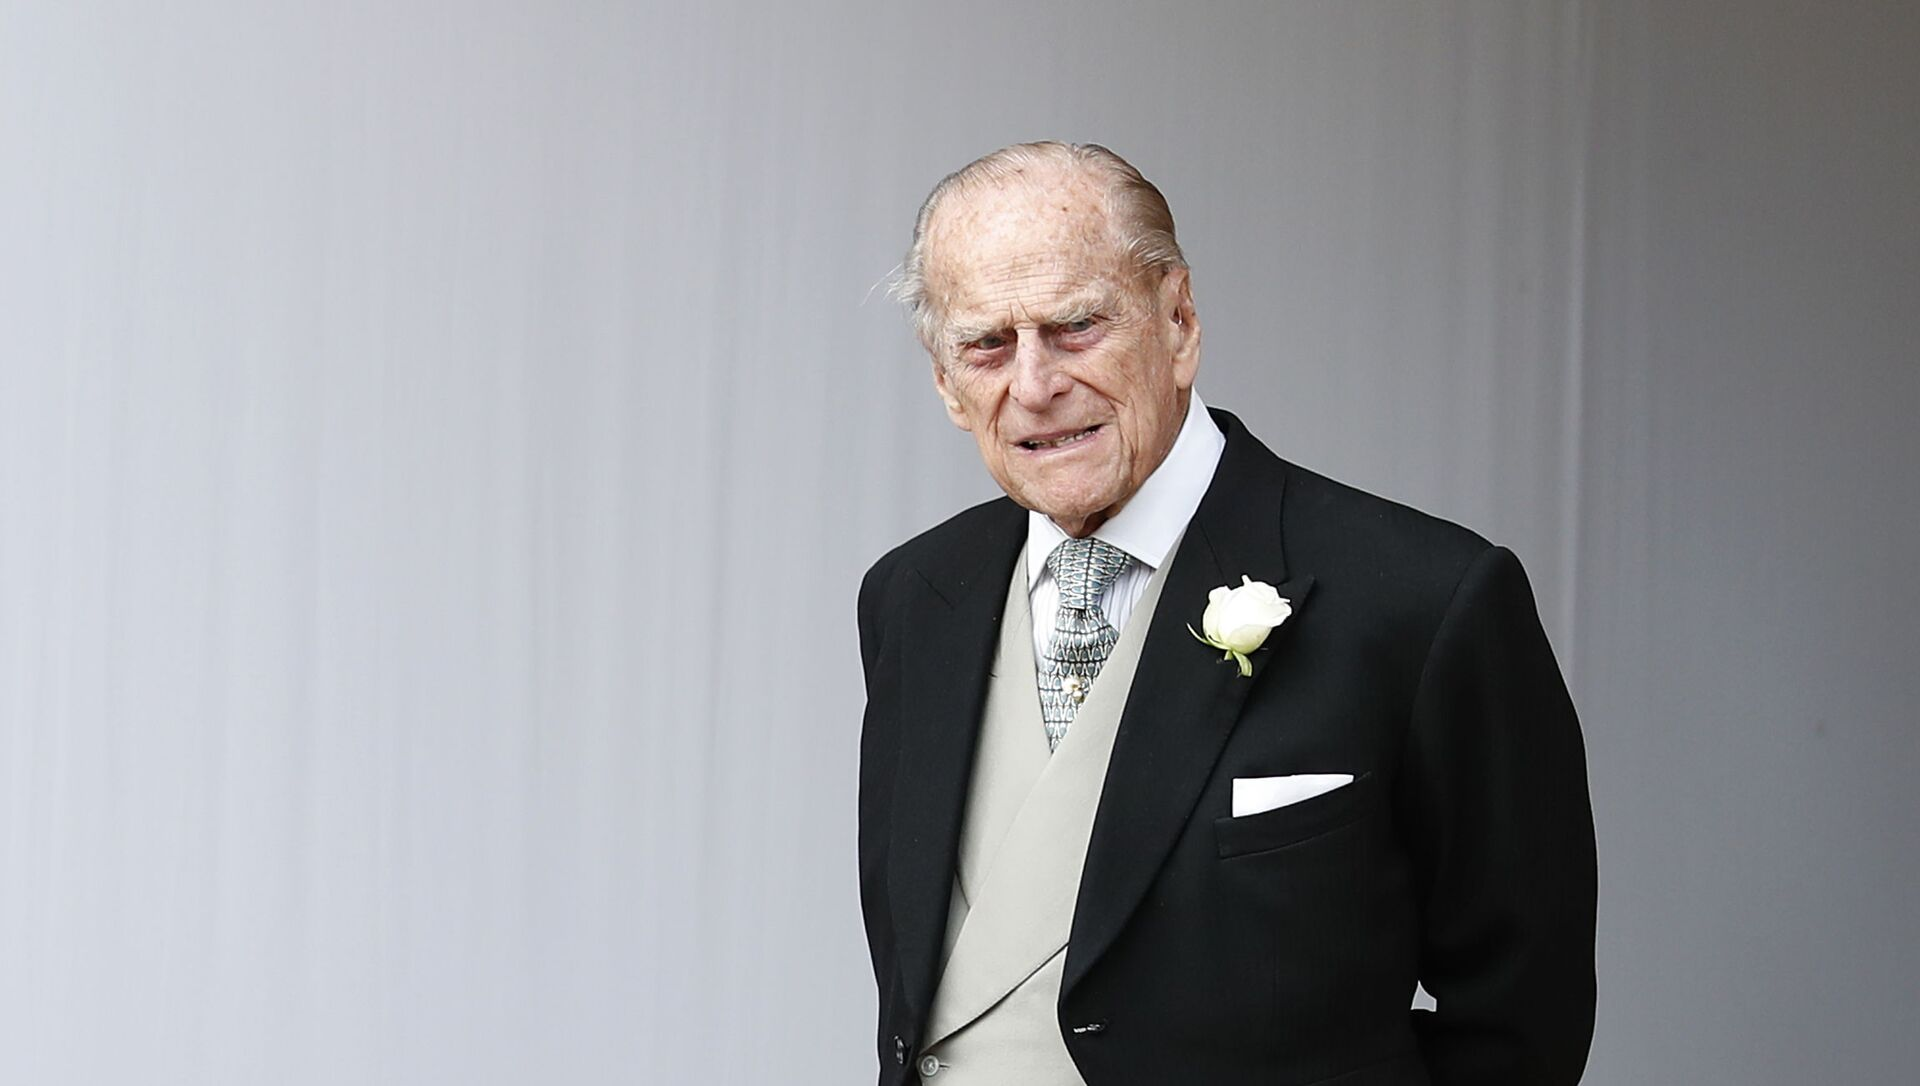 Britain's Prince Philip waits for the bridal procession following the wedding of Princess Eugenie of York and Jack Brooksbank in St George's Chapel, Windsor Castle, near London, England, Friday, Oct. 12, 2018 - Sputnik International, 1920, 09.04.2021